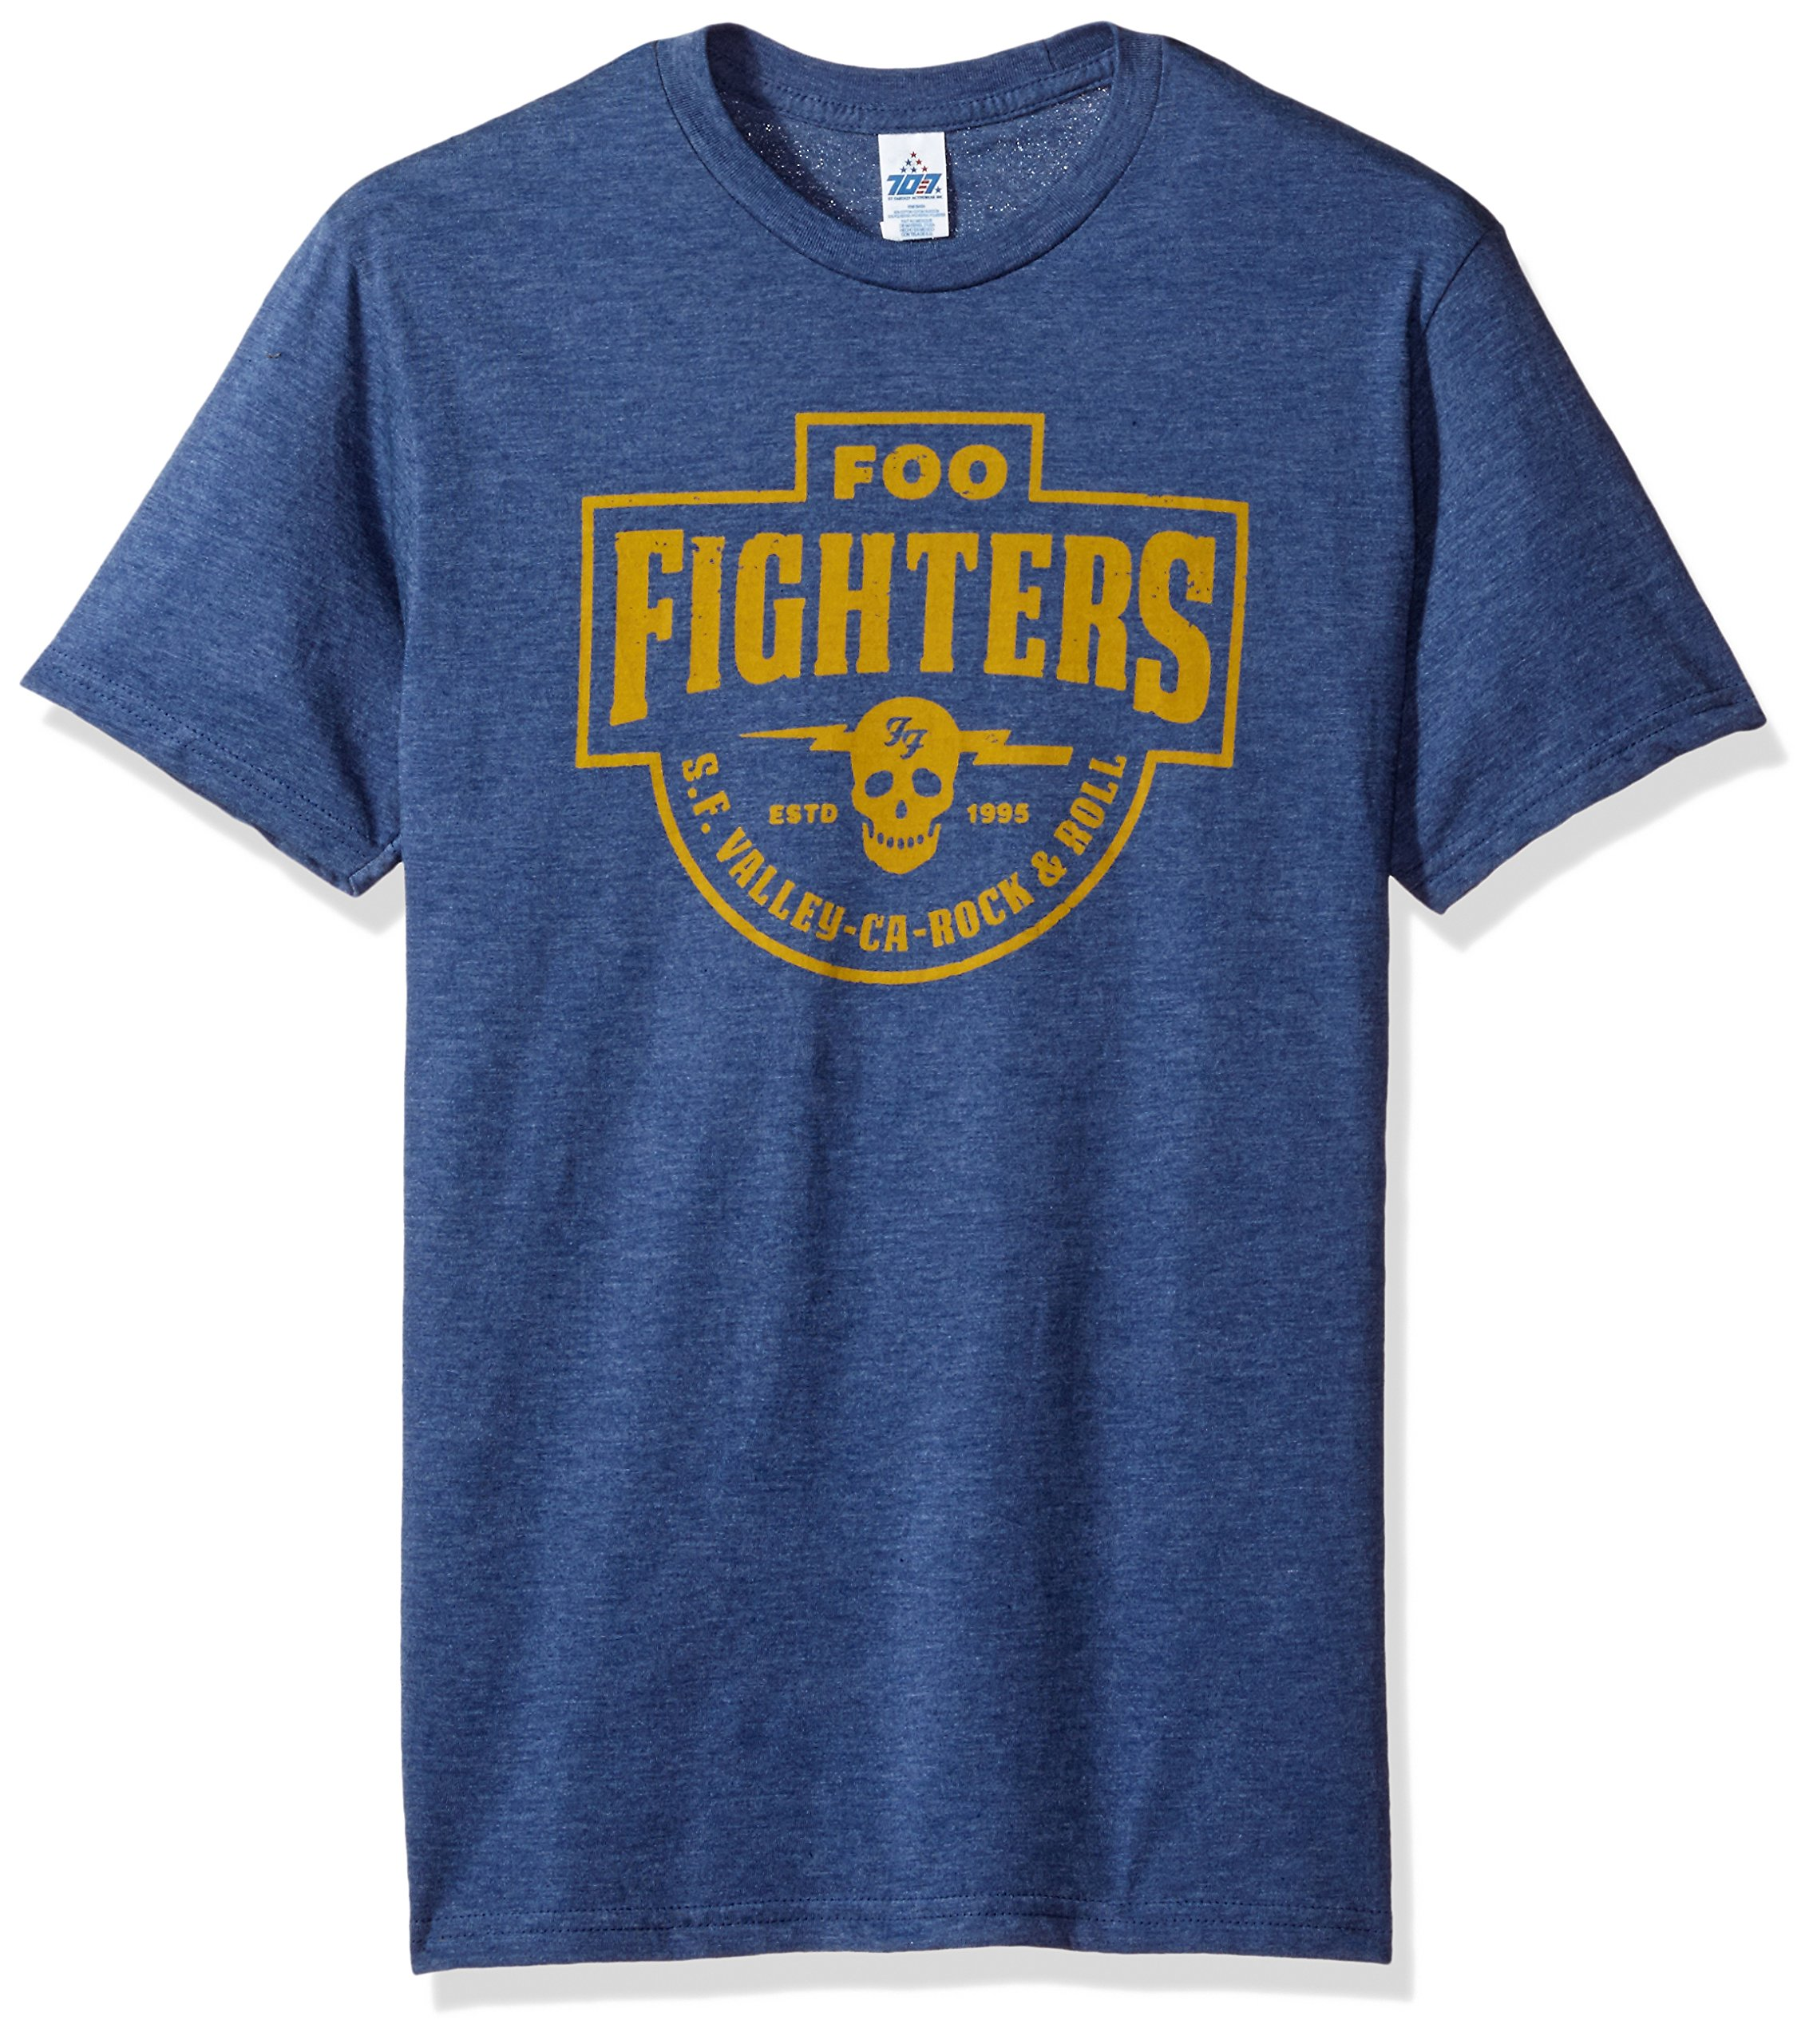 FEA Men's Foo Fighters S.F. Valley Mens T-Shirt, Heather Navy, Medium by FEA (Image #1)